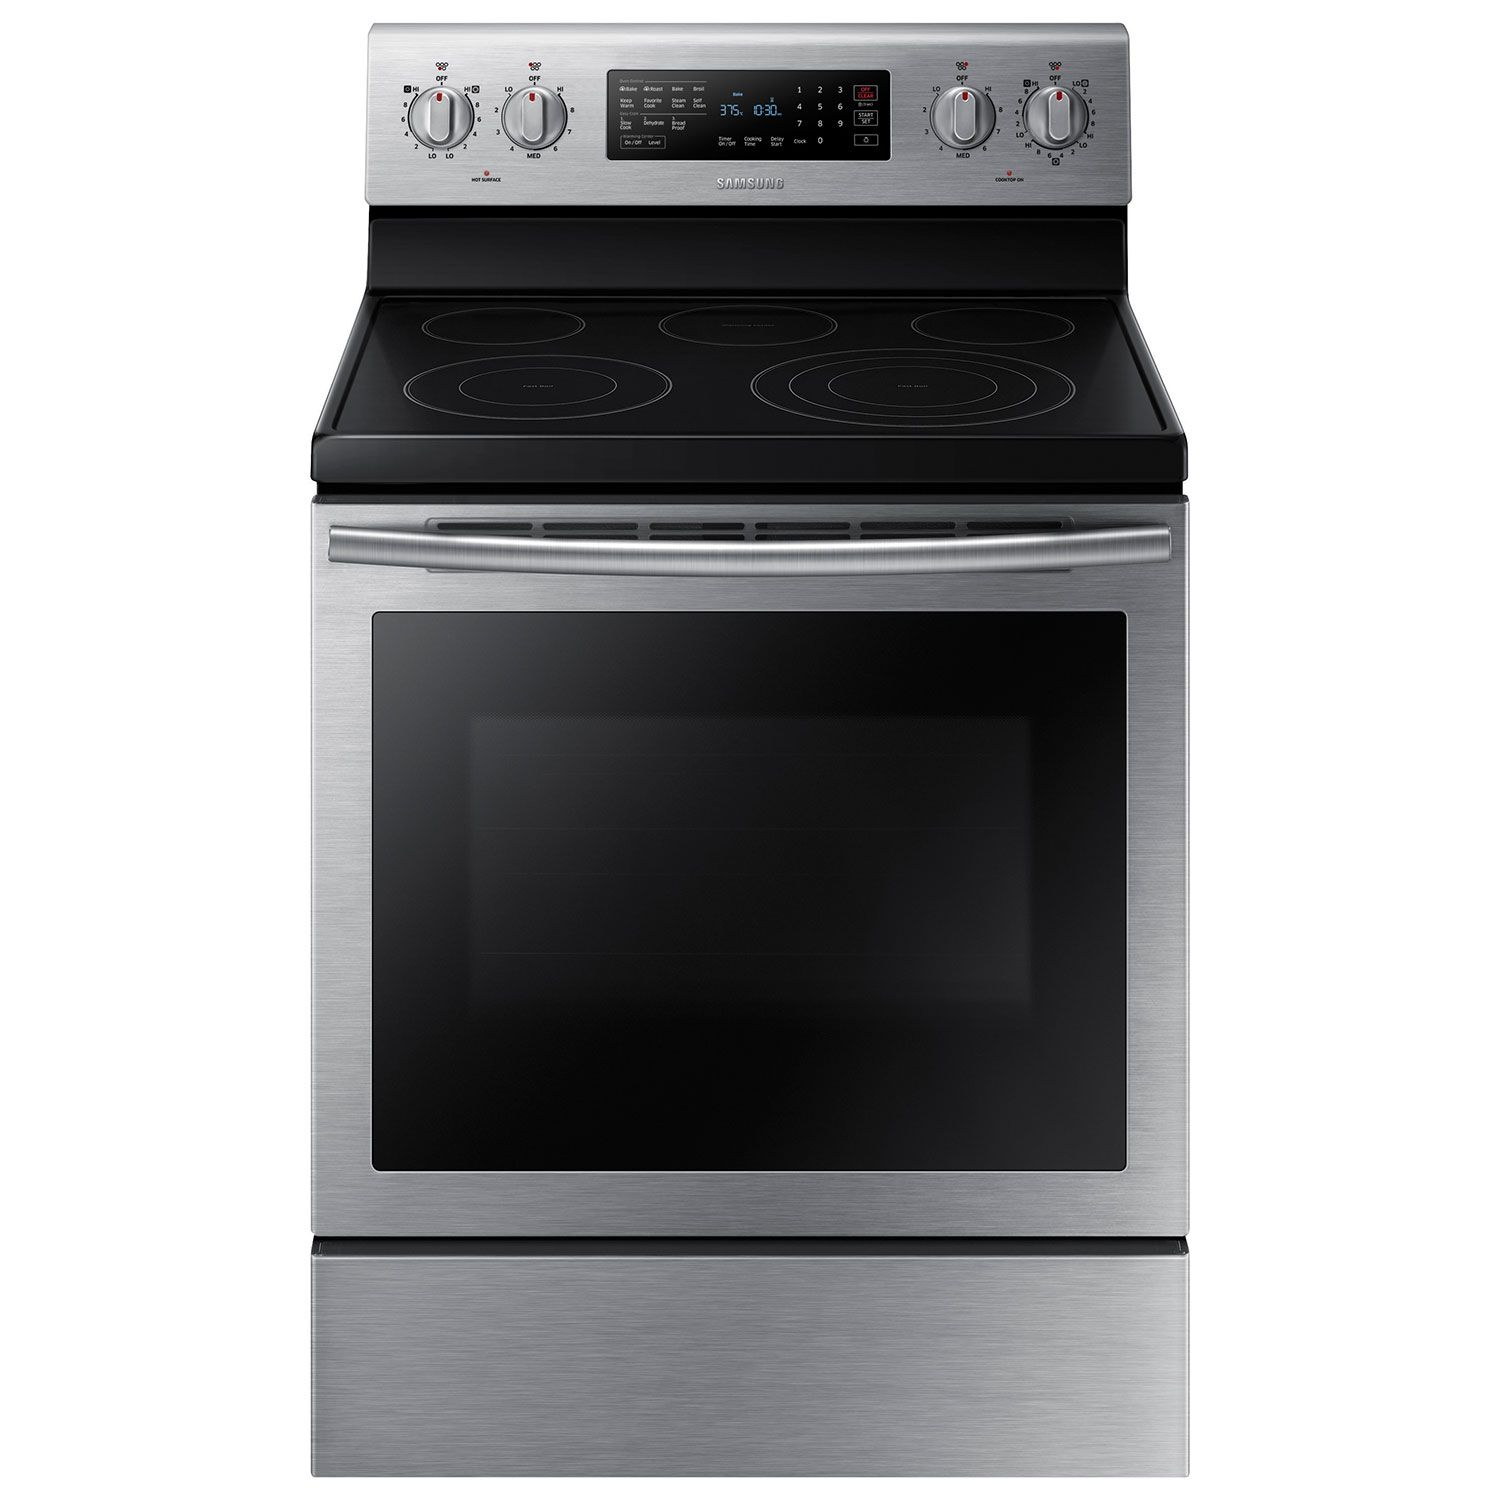 cool Top 10 Best Samsung Stove Reviews How to Choose the Right